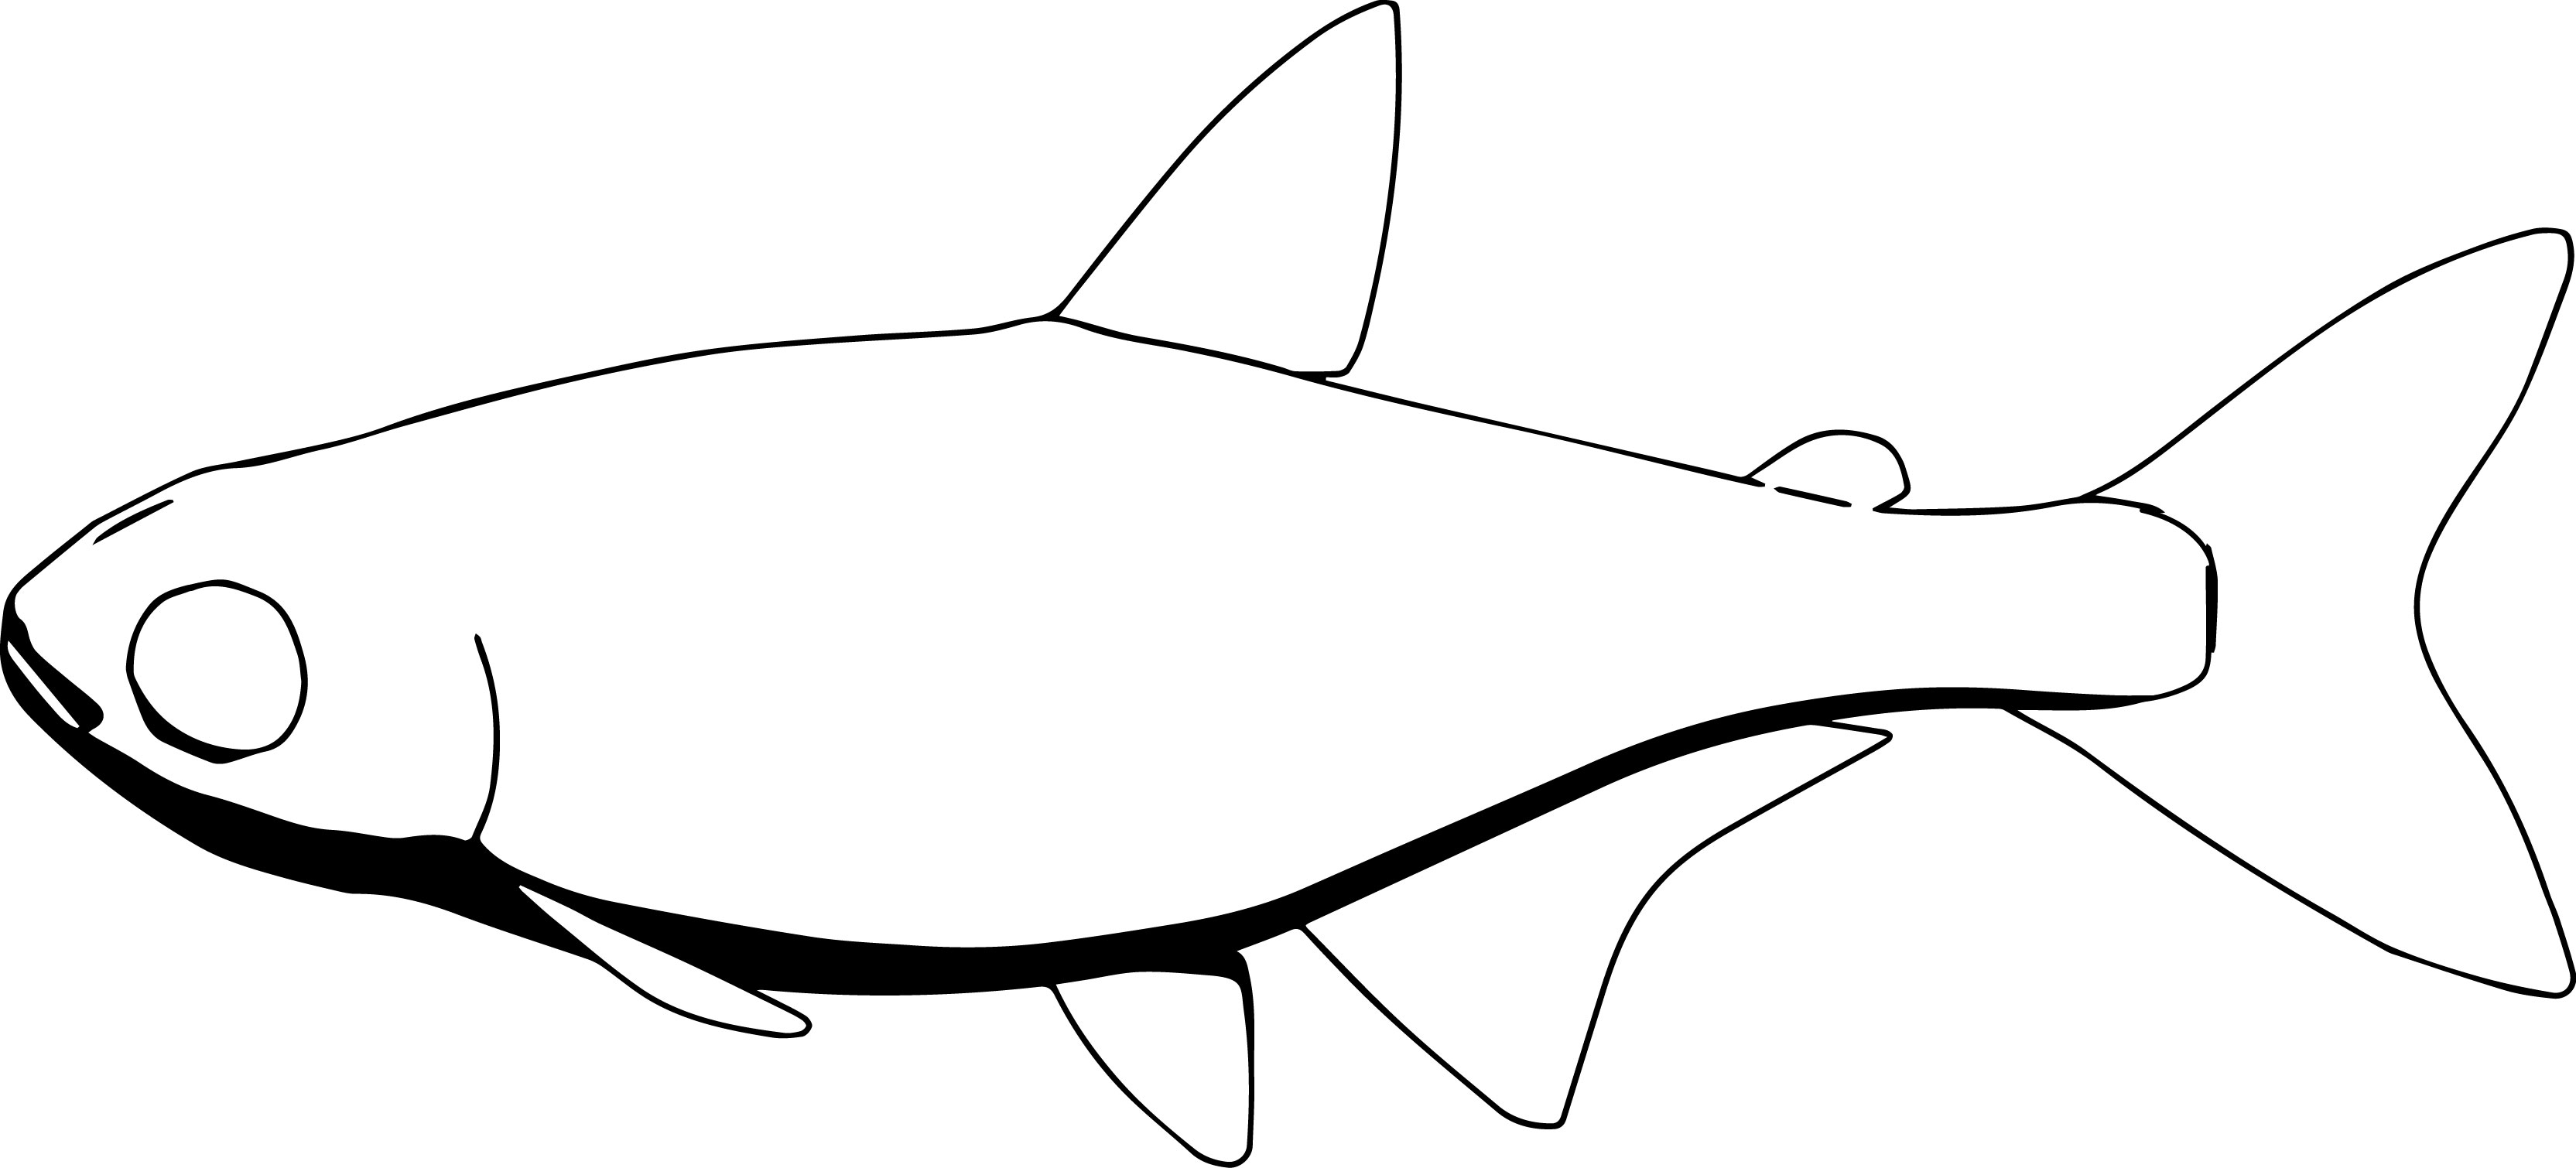 Neontetra Fish Coloring Page